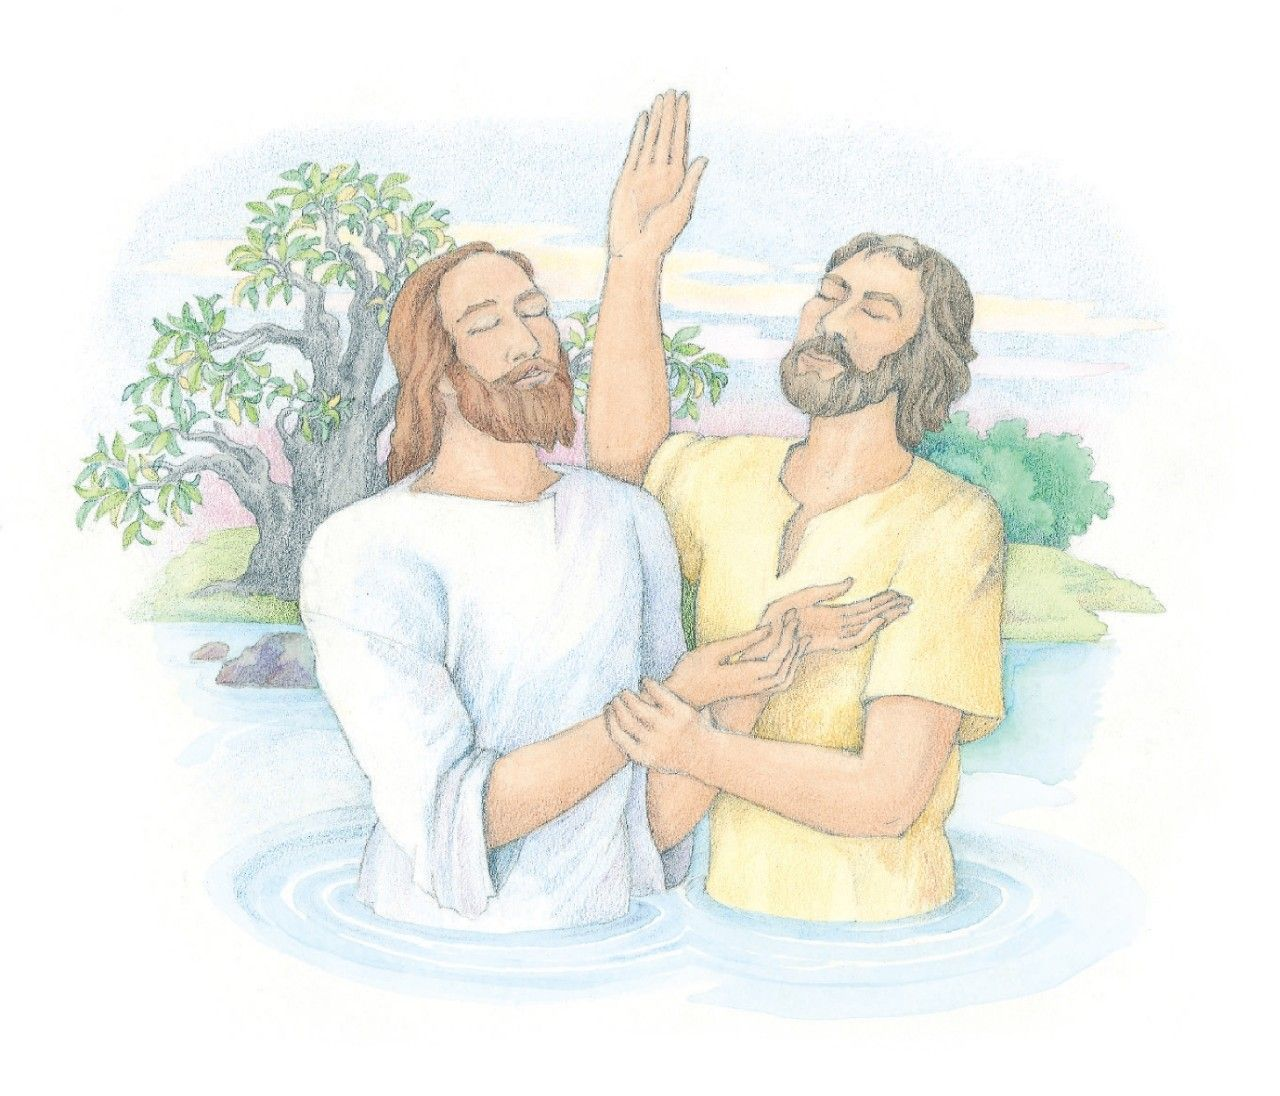 """Jesus being baptized by John the Baptist. From the Children's Songbook, page 100, """"Baptism""""; watercolor illustration by Phyllis Luch."""